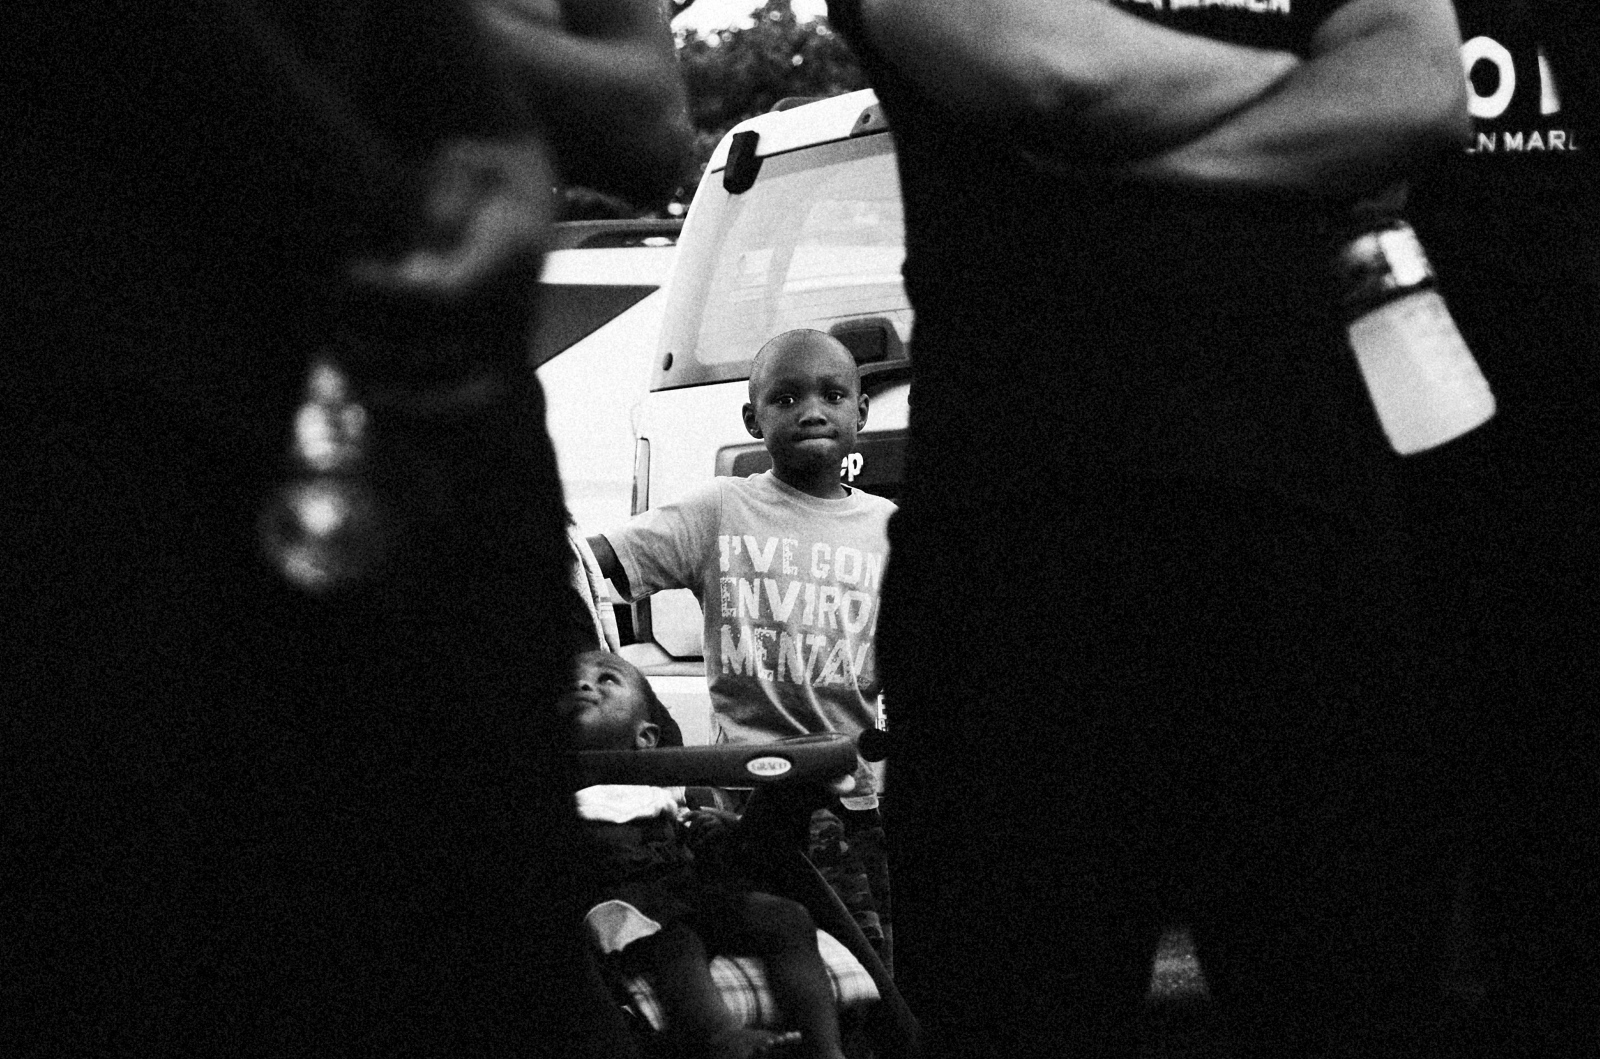 In response to the spike in homicides in 2013, Baltimore City Councilman Brandon Scott and activist Munir Bahar organized the 300 Man March, which encouraged men of all ages to walk at night through some of Baltimore's most violent neighborhoods. Neighbors came out fo their houses to cheer the marchers on as they walked through Baltimore's BelAir-Edison neighborhood.